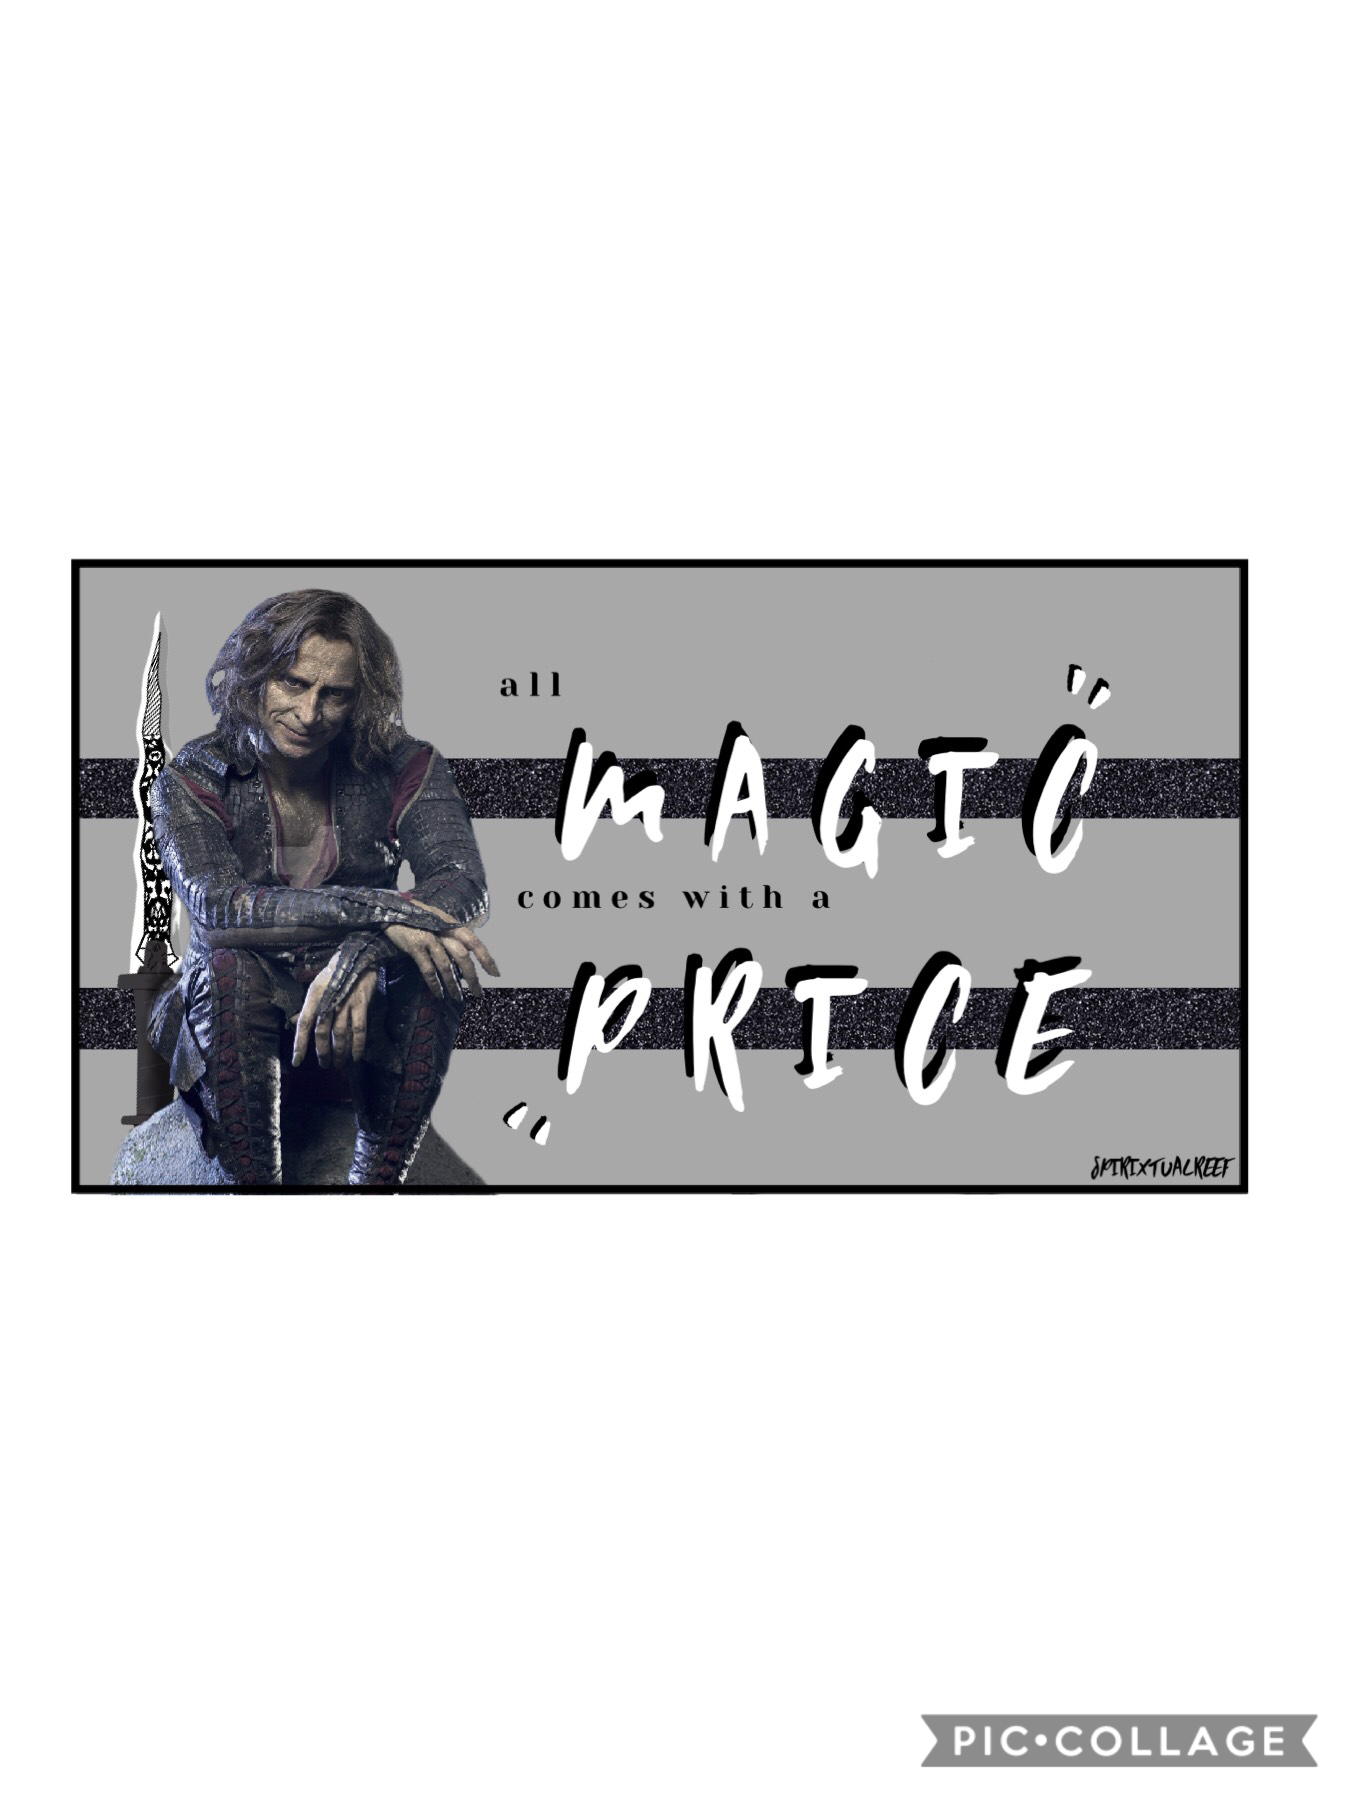 The new fonts are really cool 👌. Been rewatching Once Upon A Time with the intention of finishing it this time and my favourite character is still Rumple/Mr Gold. I think I like villains lol.